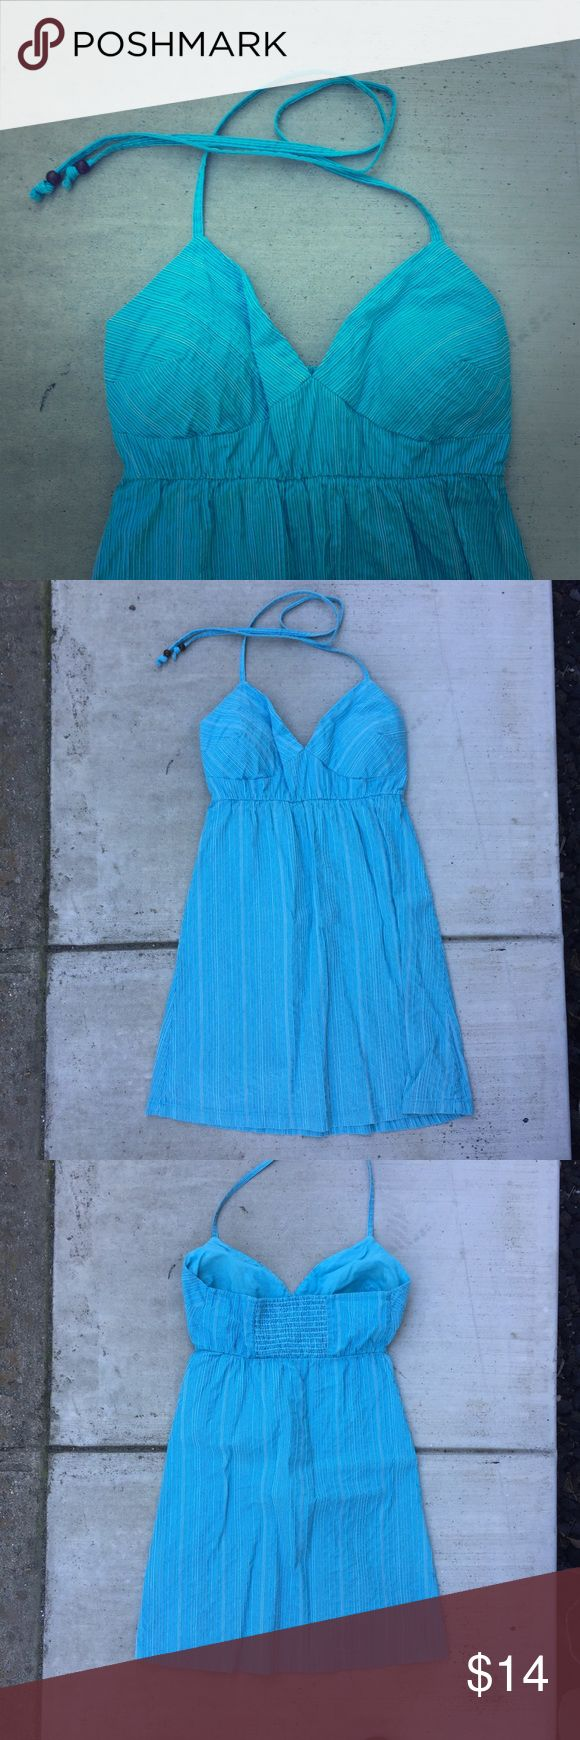 Halter sundress Super cute! Wooden beads on ties. Light/ modesty padding cups in so you can wear it comfortably without a bra. Mossimo Supply Co. Dresses Mini